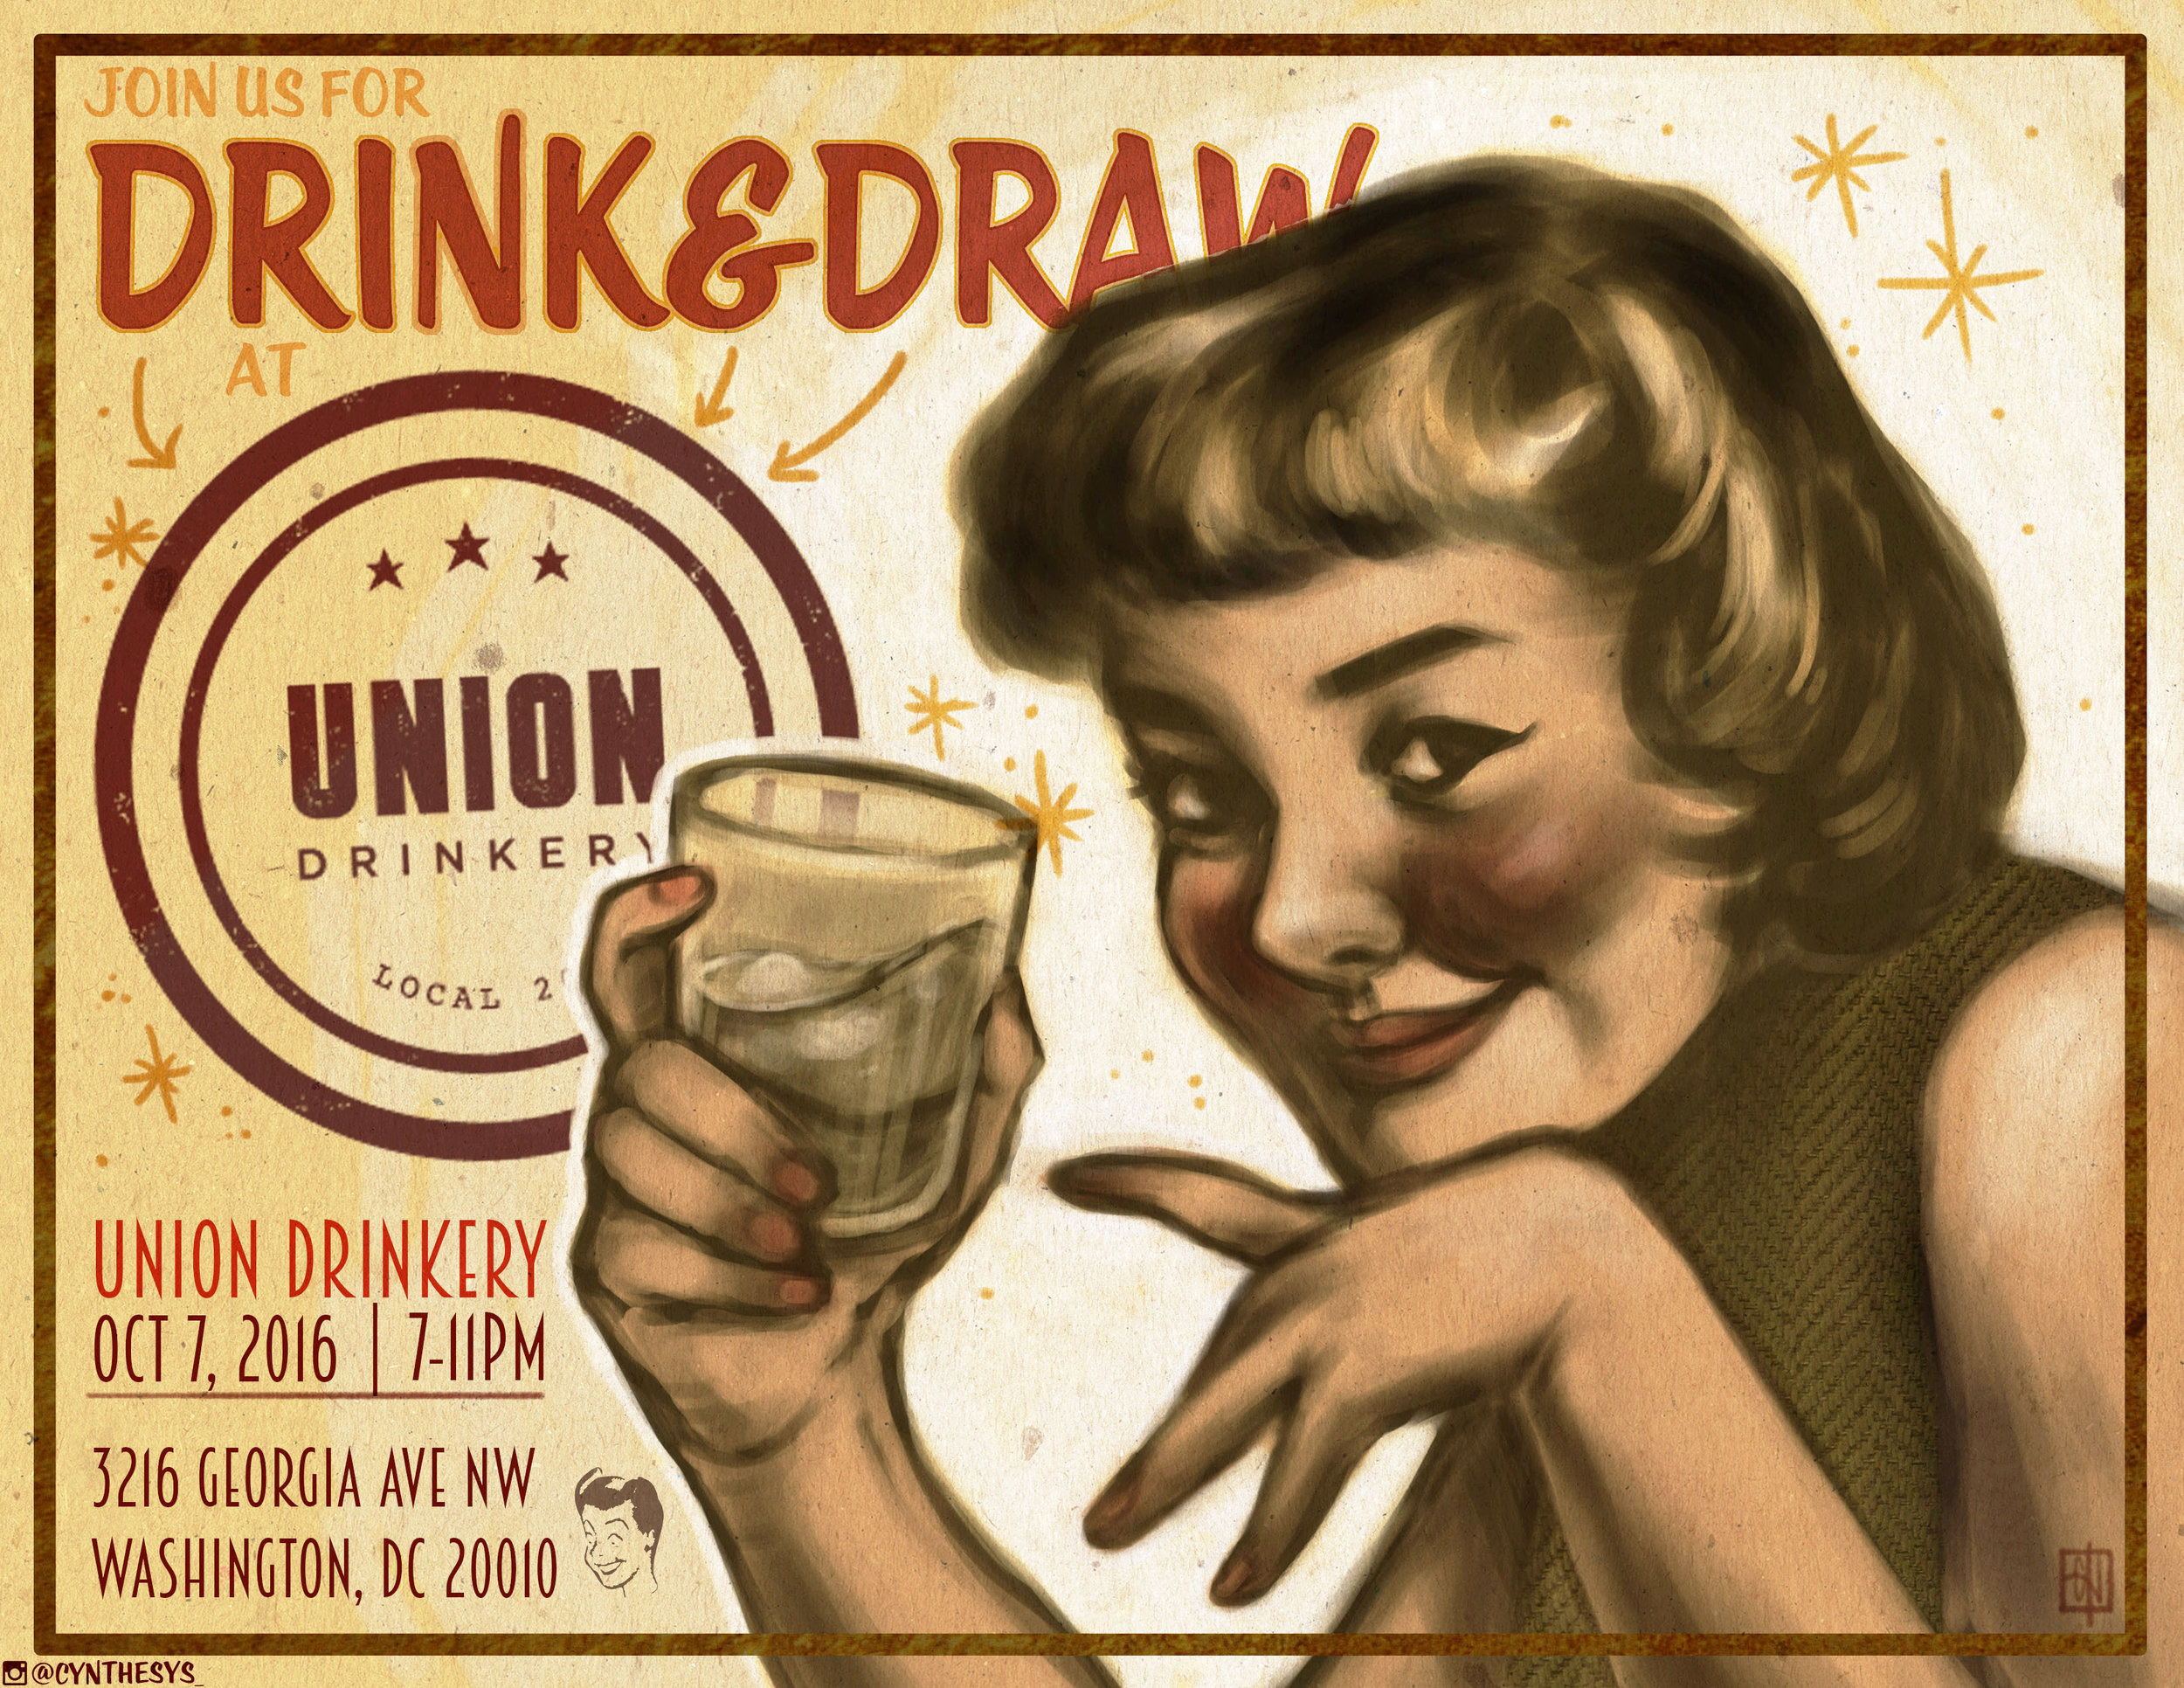 Drink & Draw event flyer